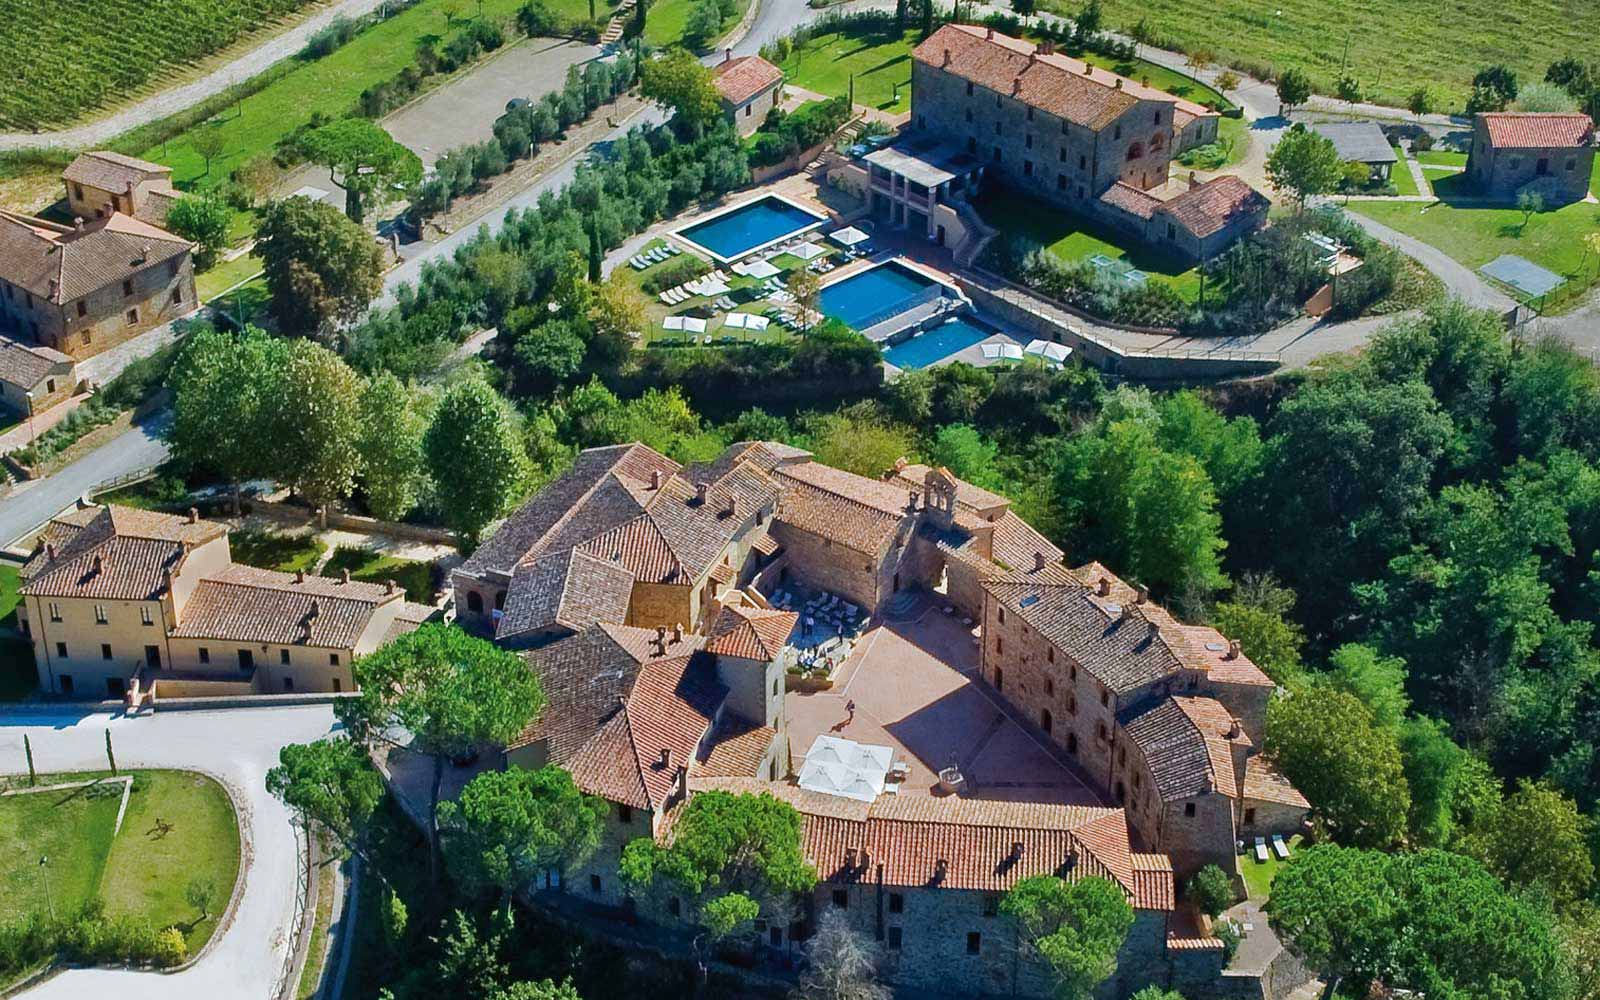 Aerial View of Castel Monastero Tuscan Resort & Spa